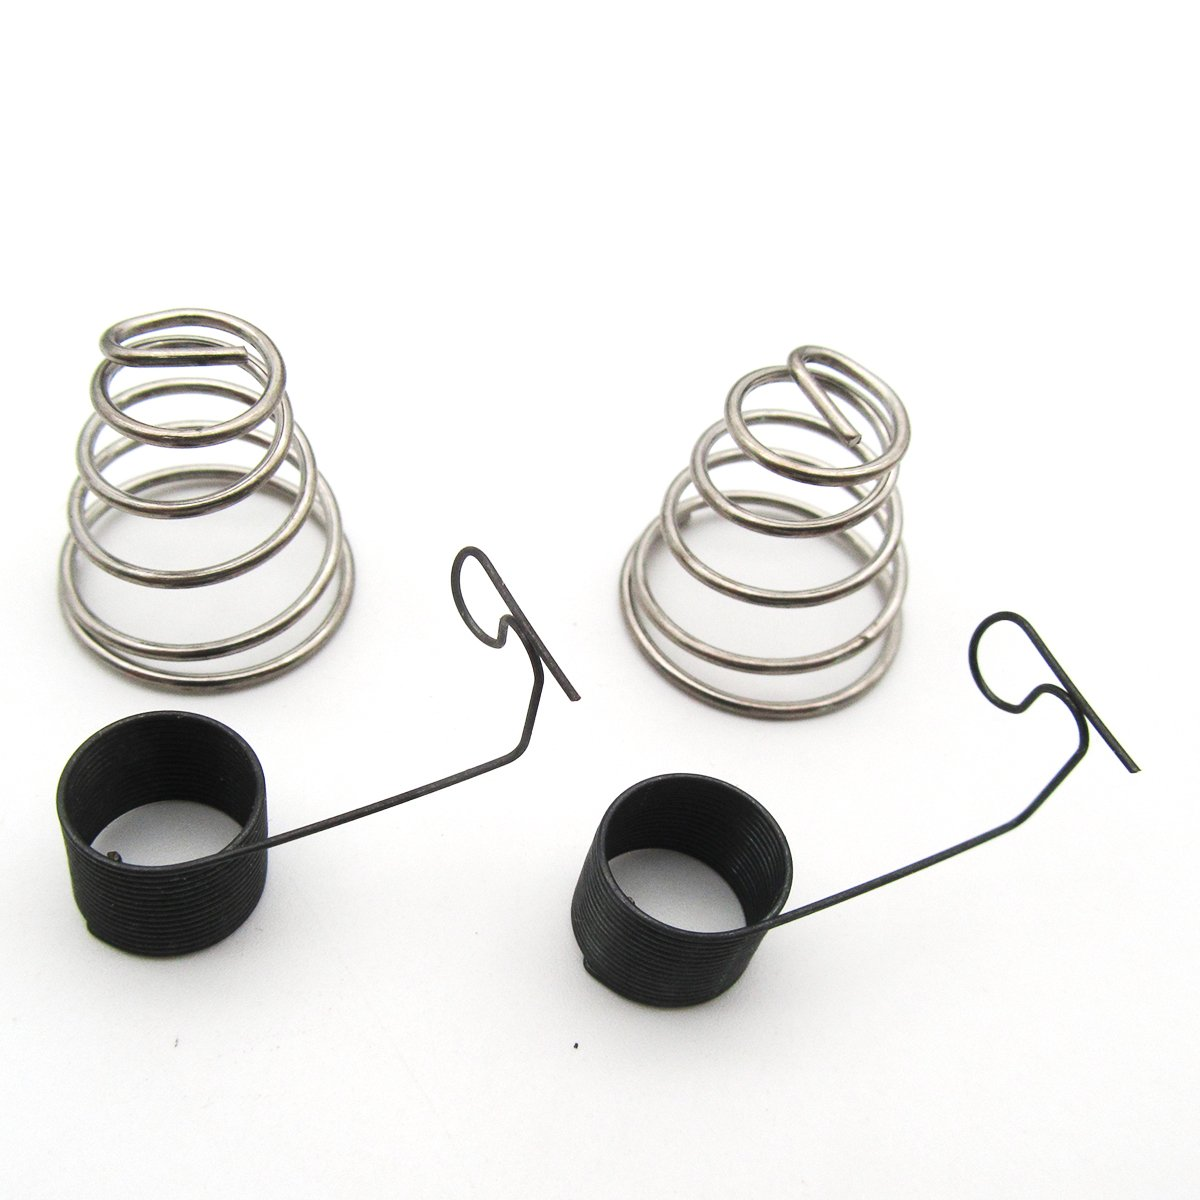 KUNPENG - #125316 +125314 THREAD TENSION SPRINGS FIT FOR SINGER 15-88, 15-90, 15-91 SEWING MACHINE